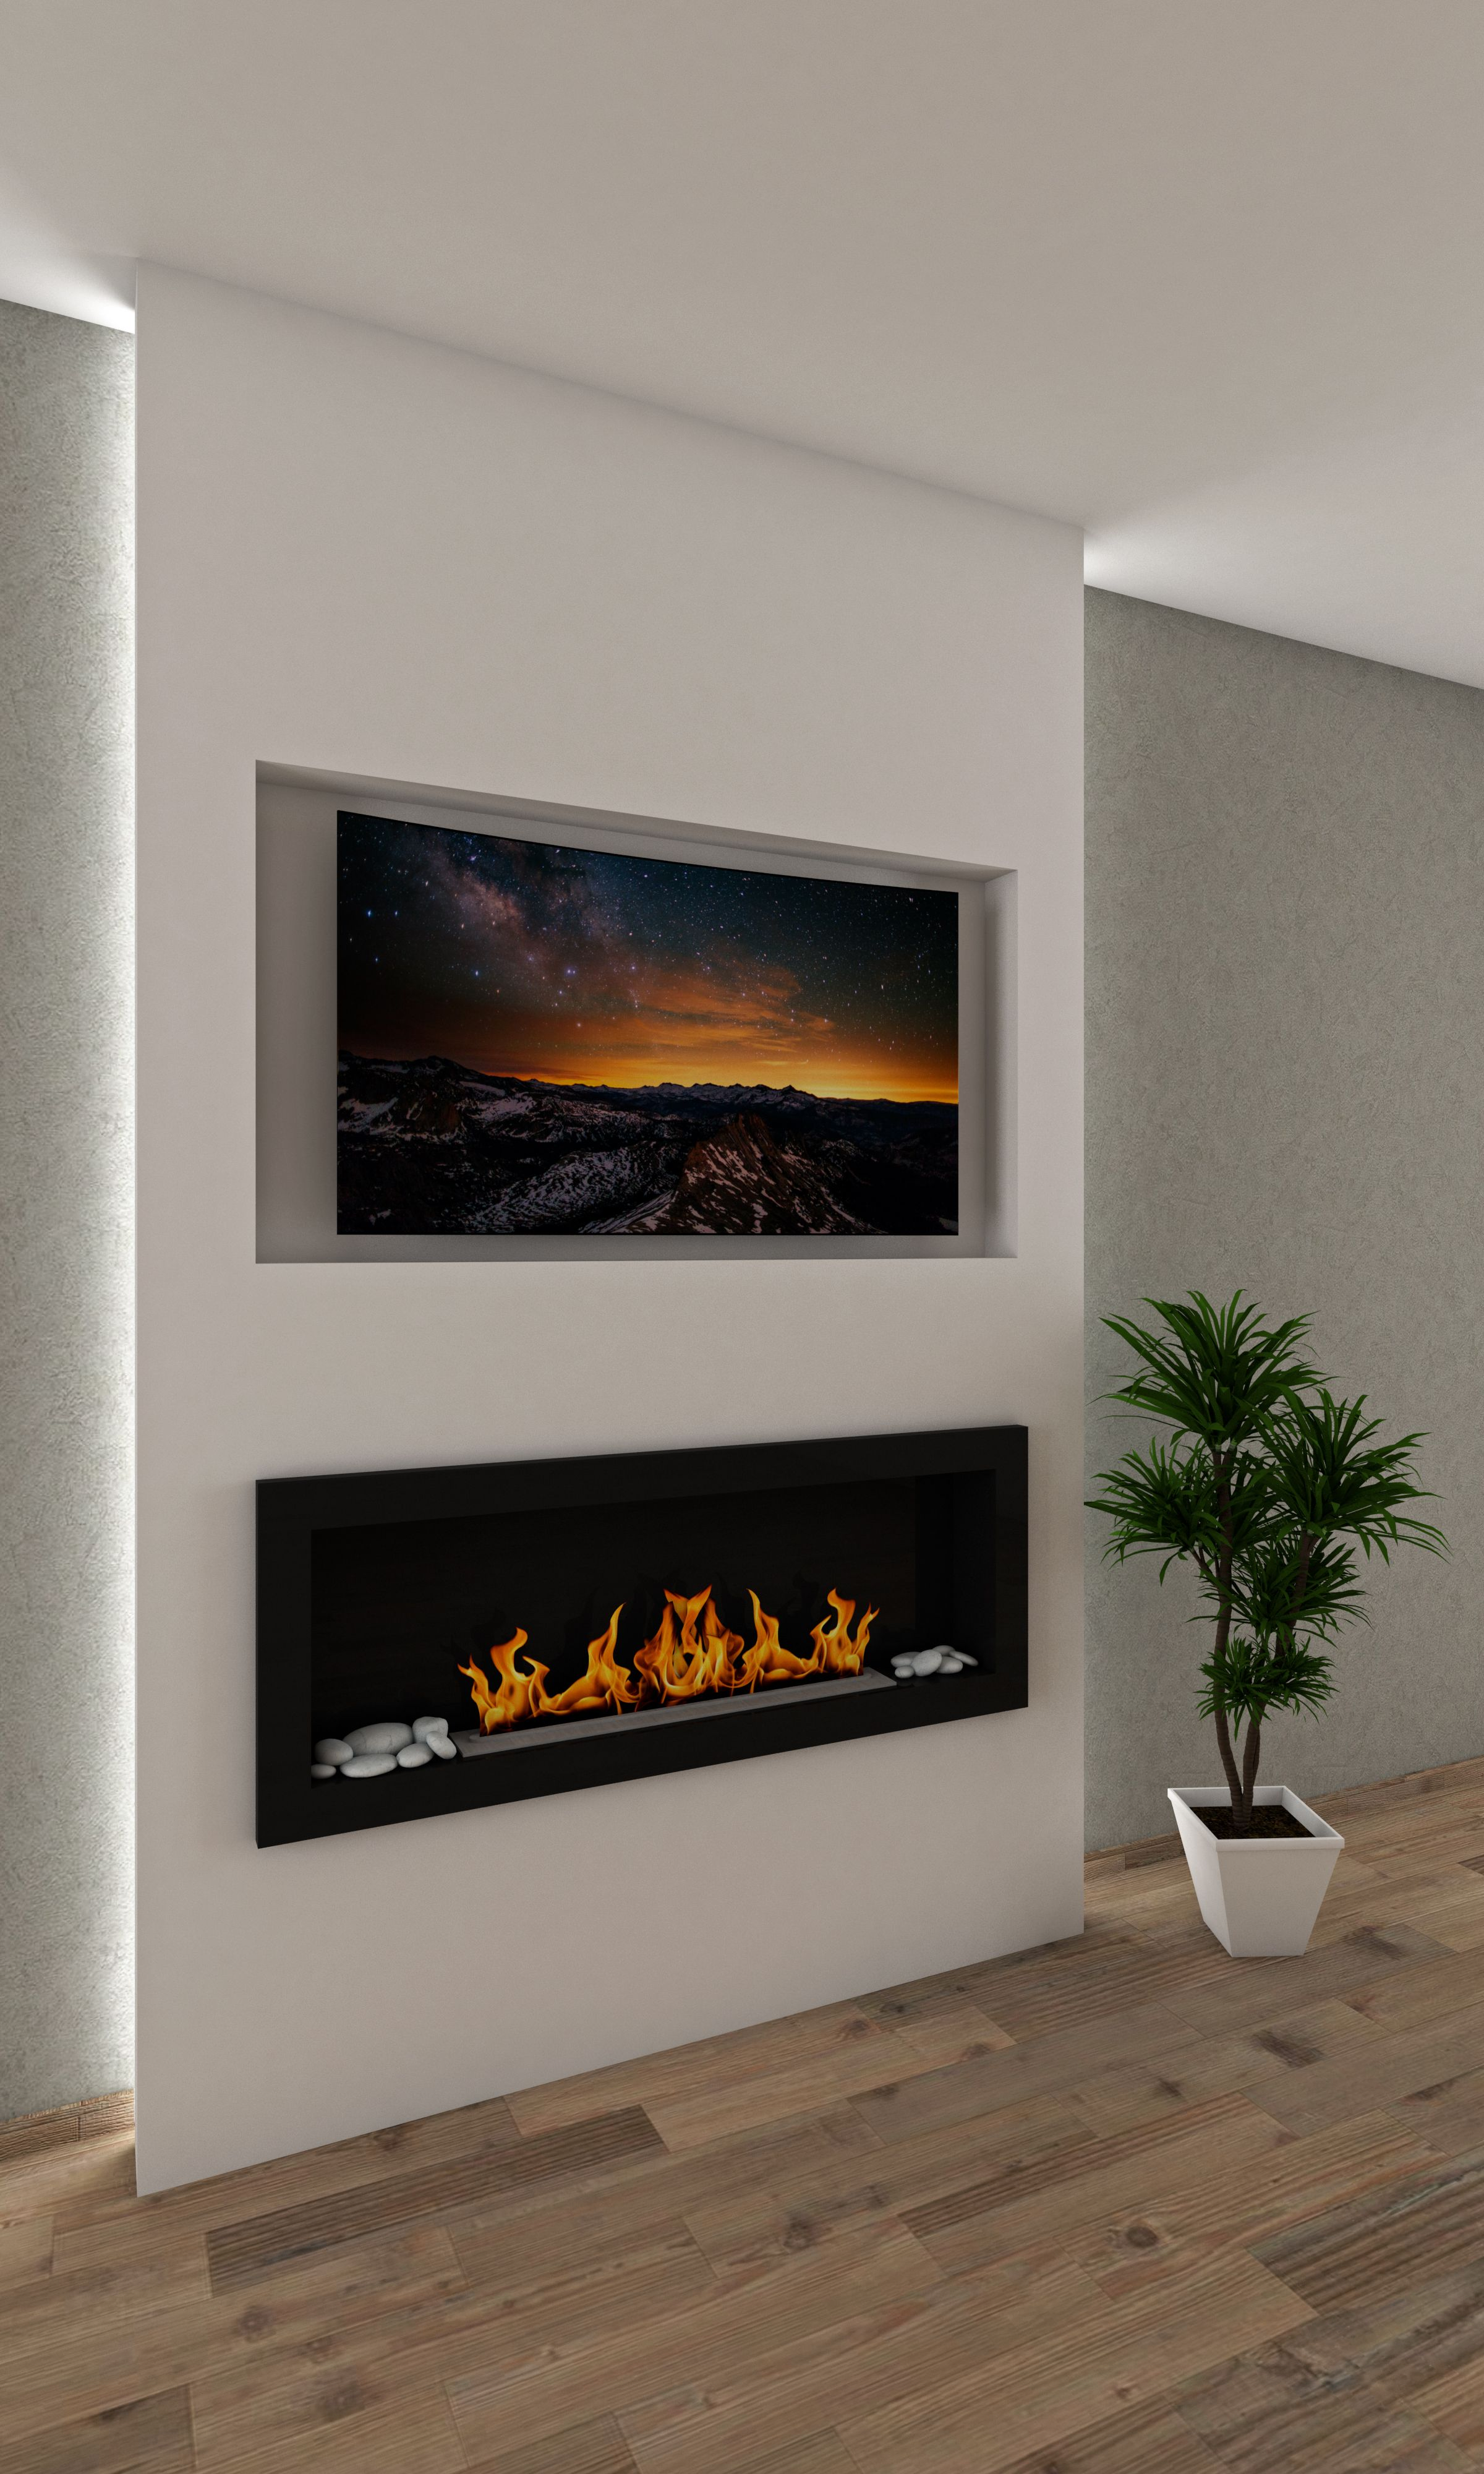 Master Bedroom Recess Tv No Surround On Wall Wall Mount Electric Fireplace Modern Fireplace Modern Electric Fireplace